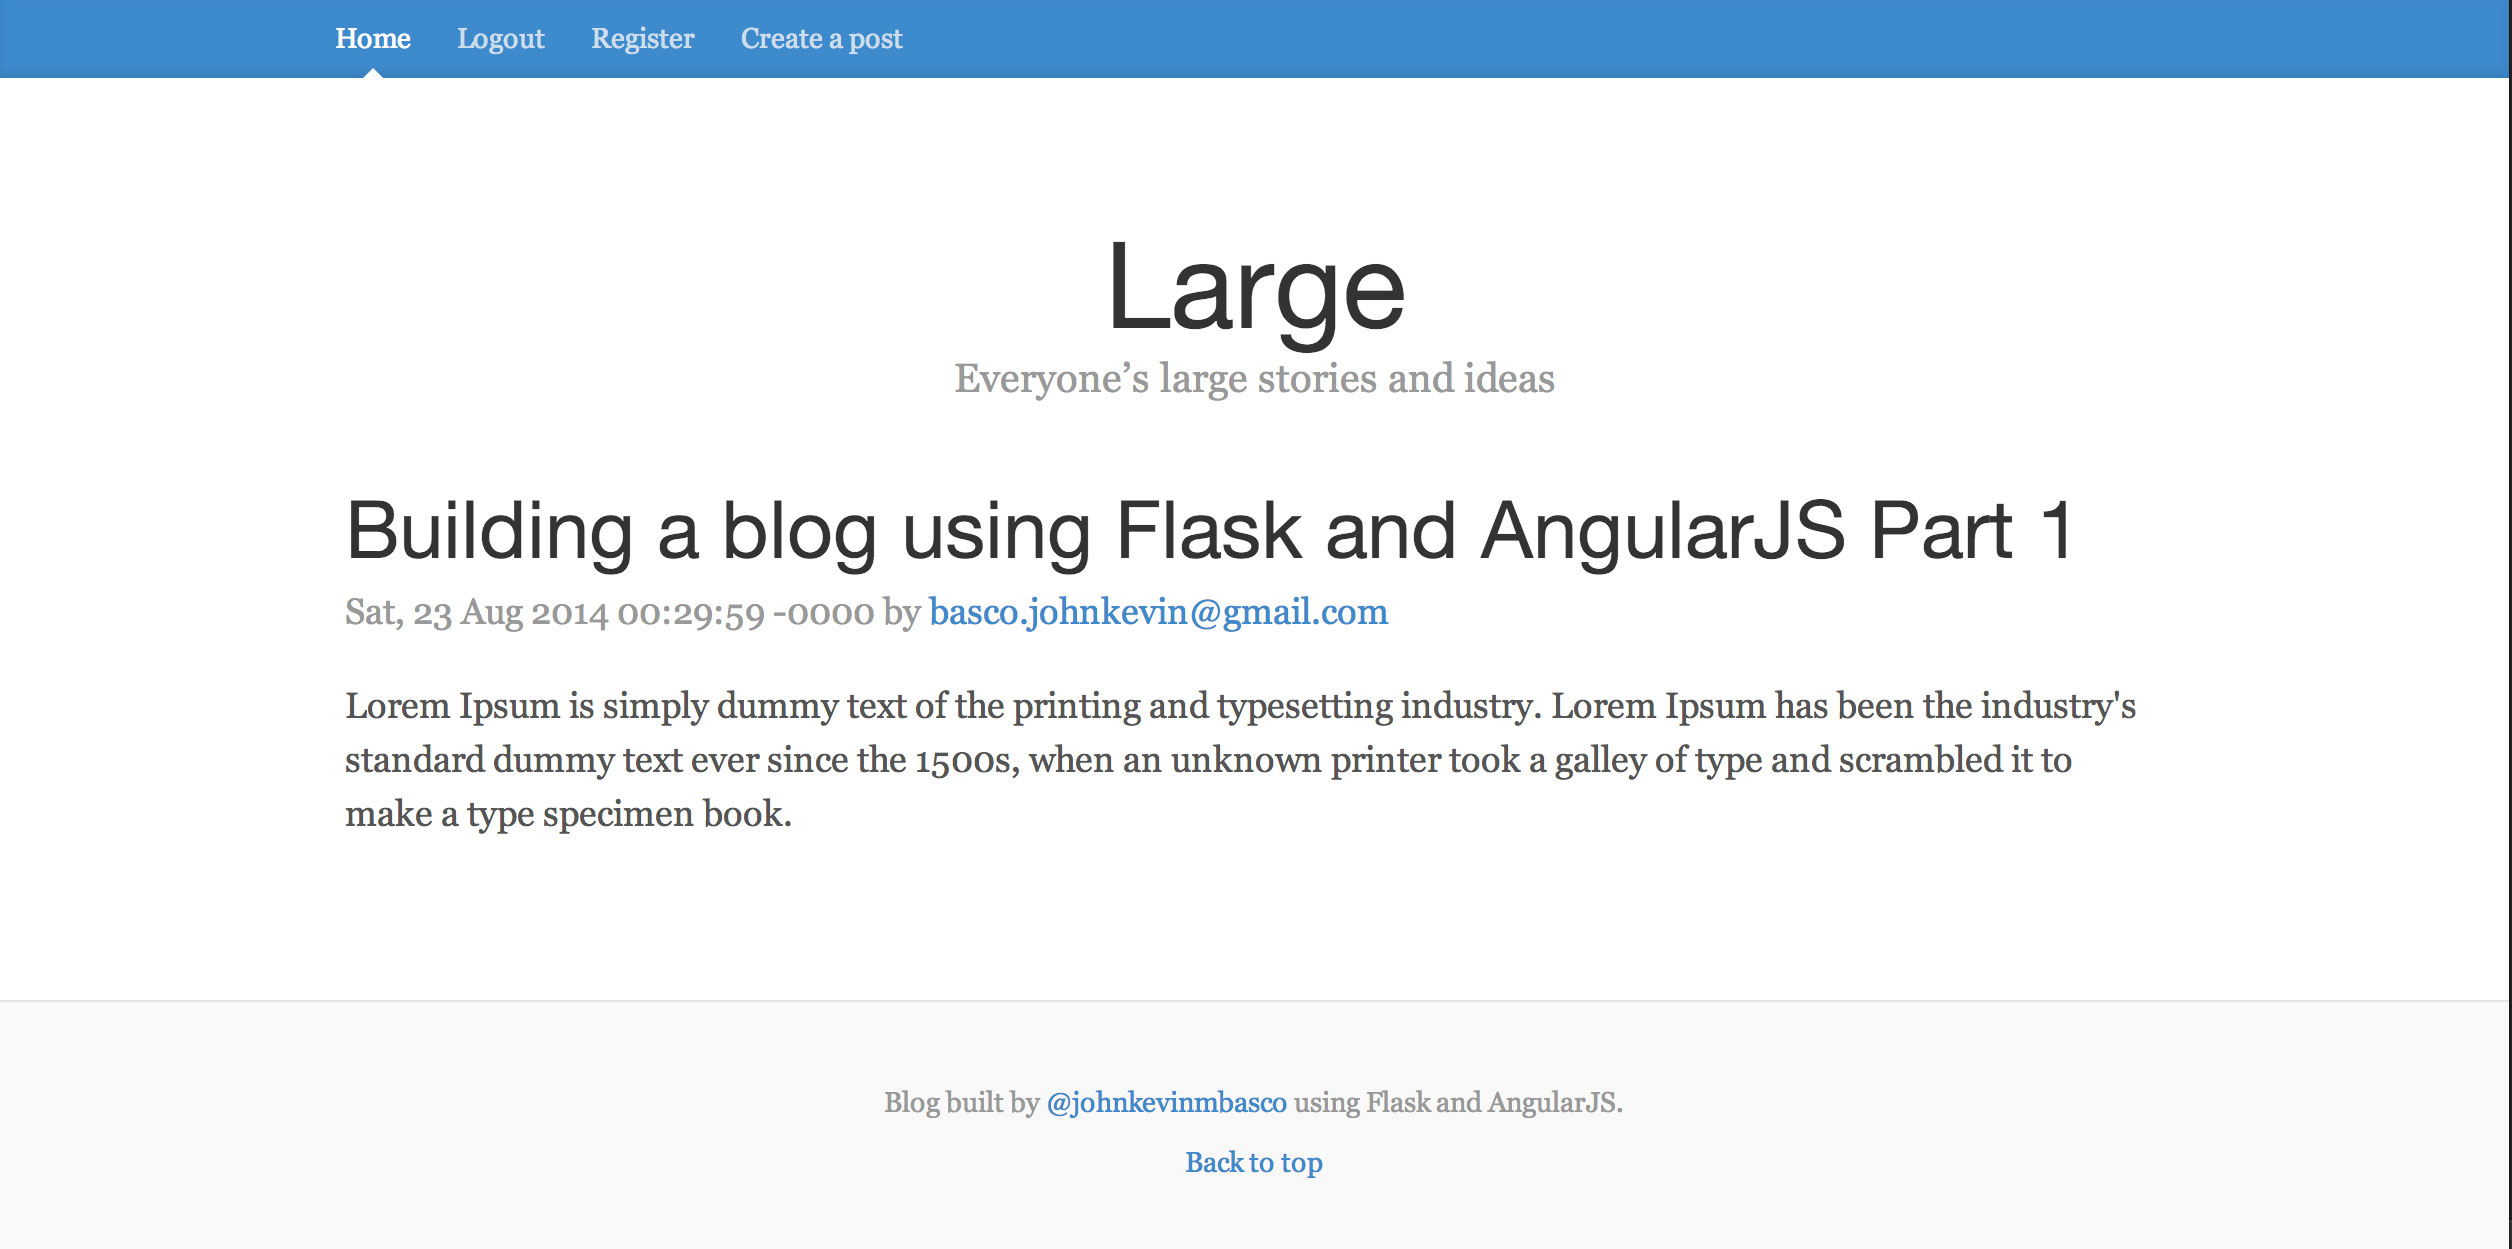 Building a blog using Flask and AngularJS Part 1